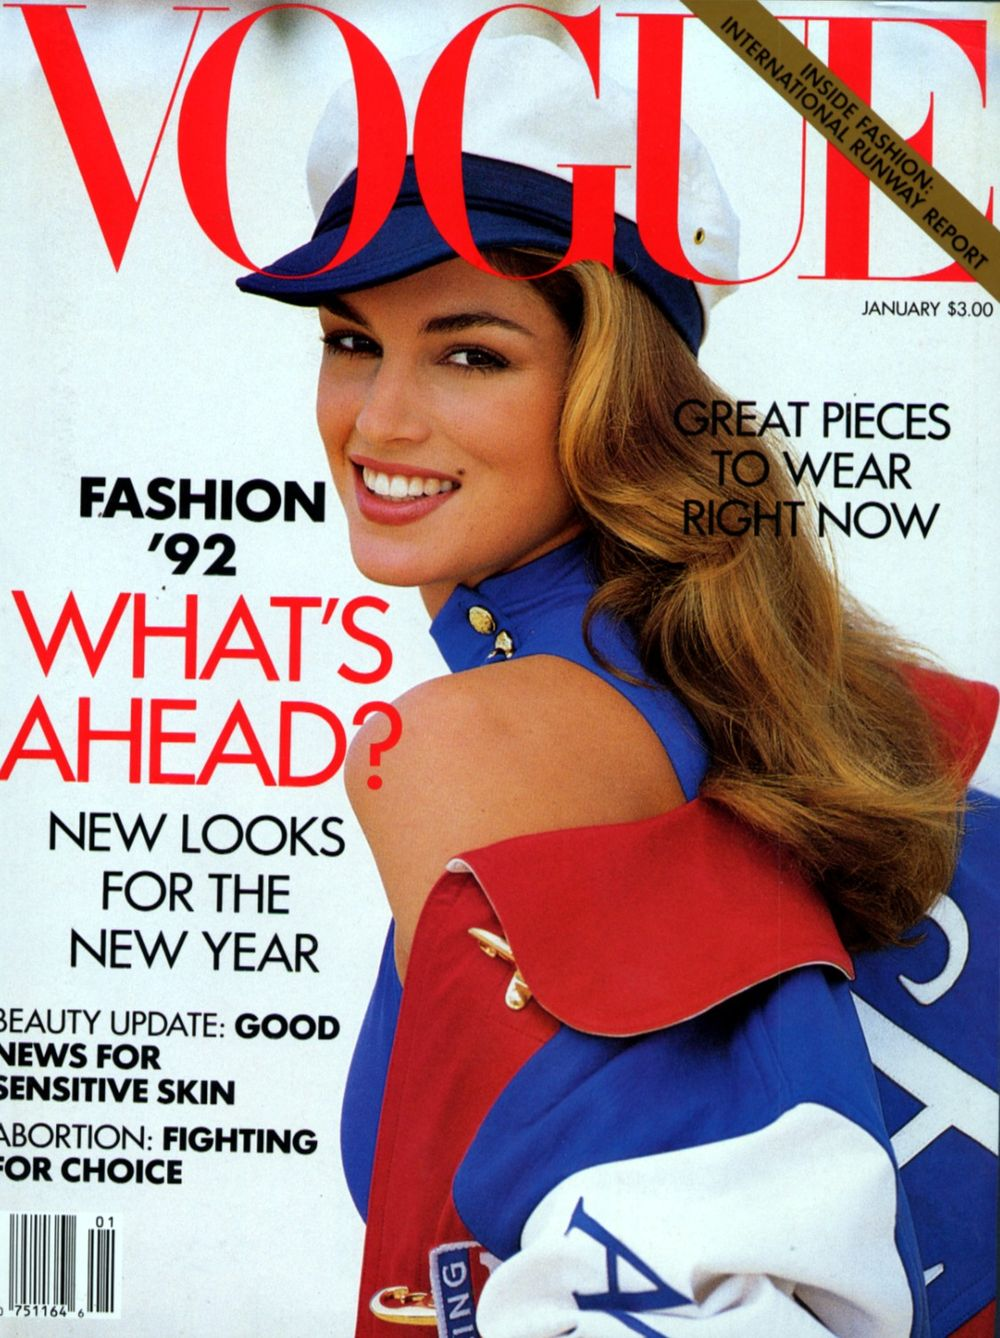 Vogue Usa Magazine Subscription: Covers Of Vogue USA With Cindy Crawford, 000 1992